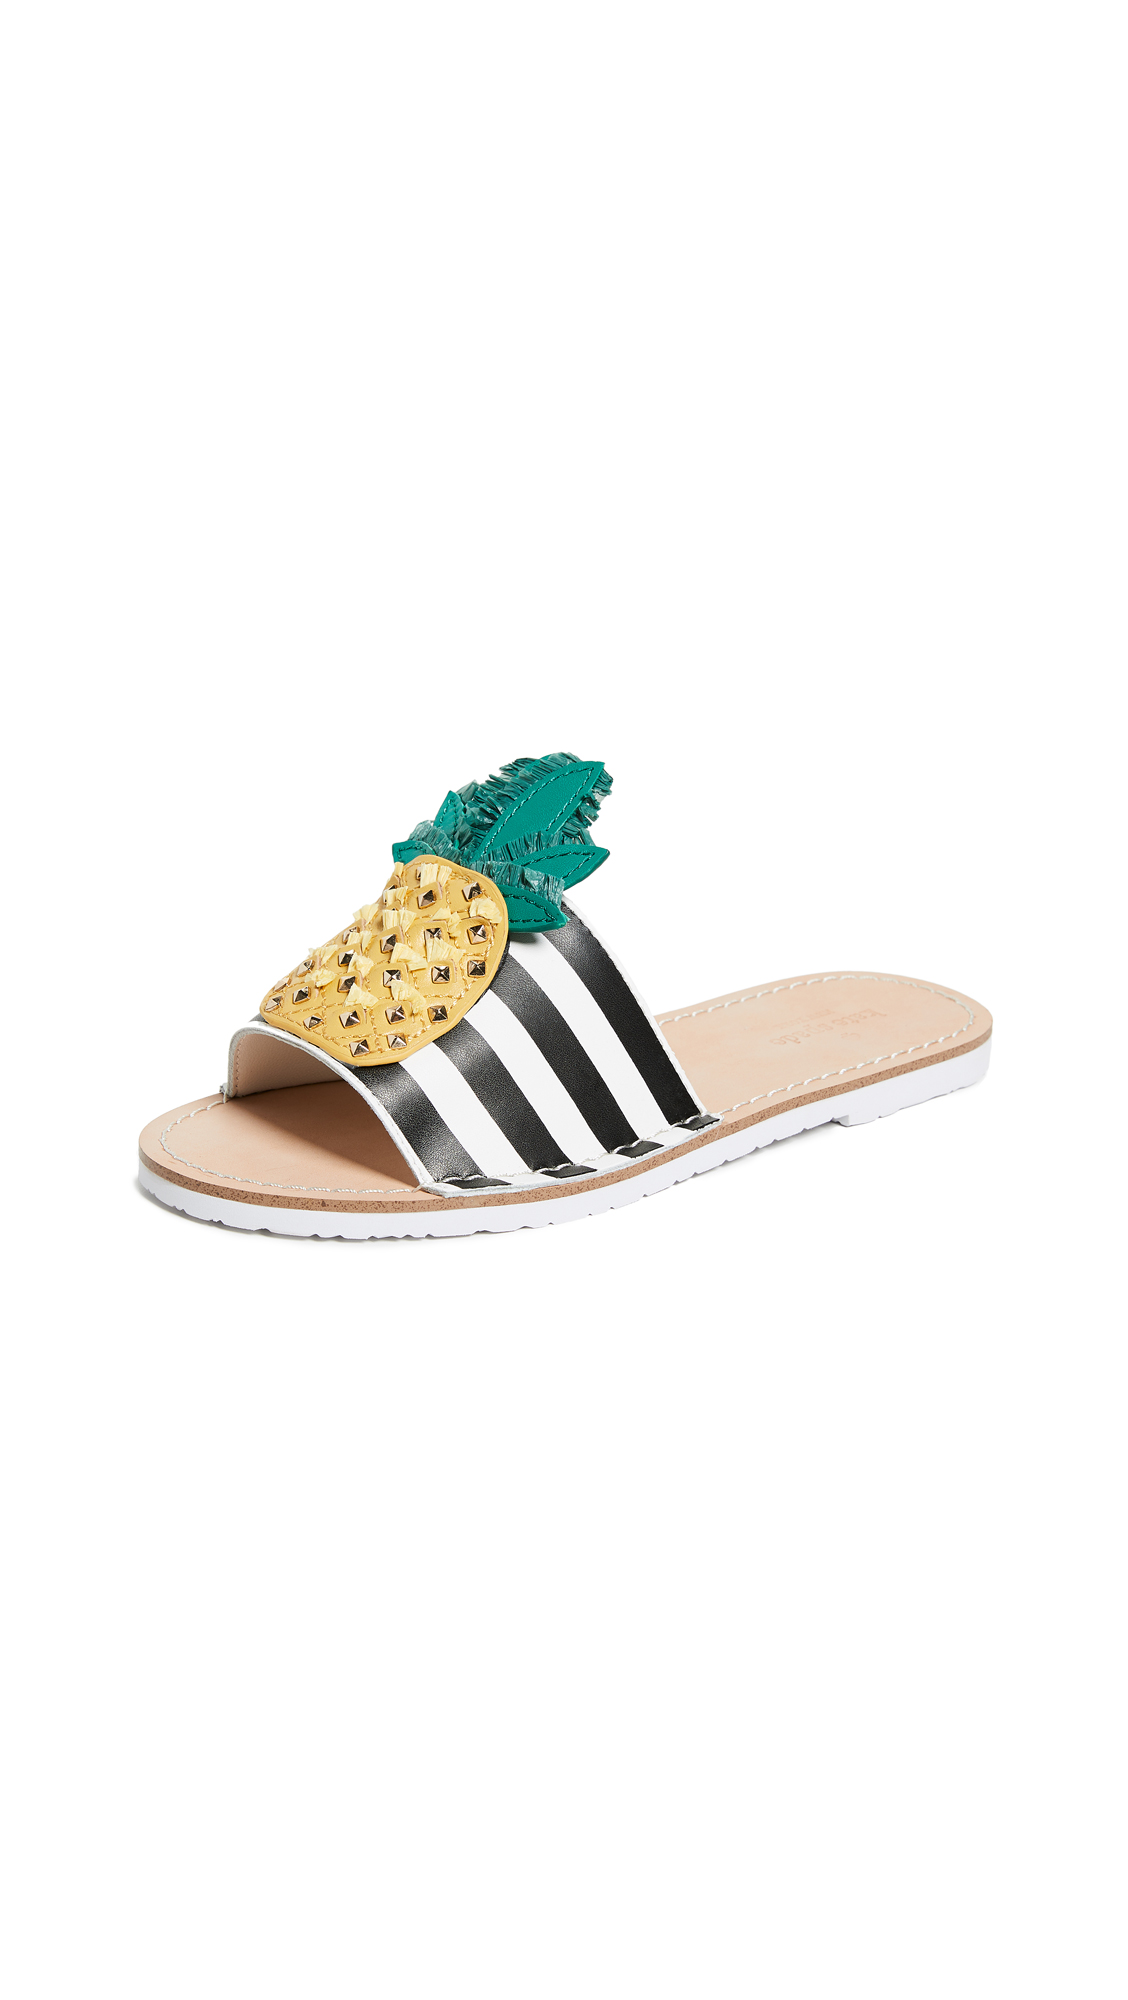 Kate Spade New York Icarus Pineapple Slides - Black/White